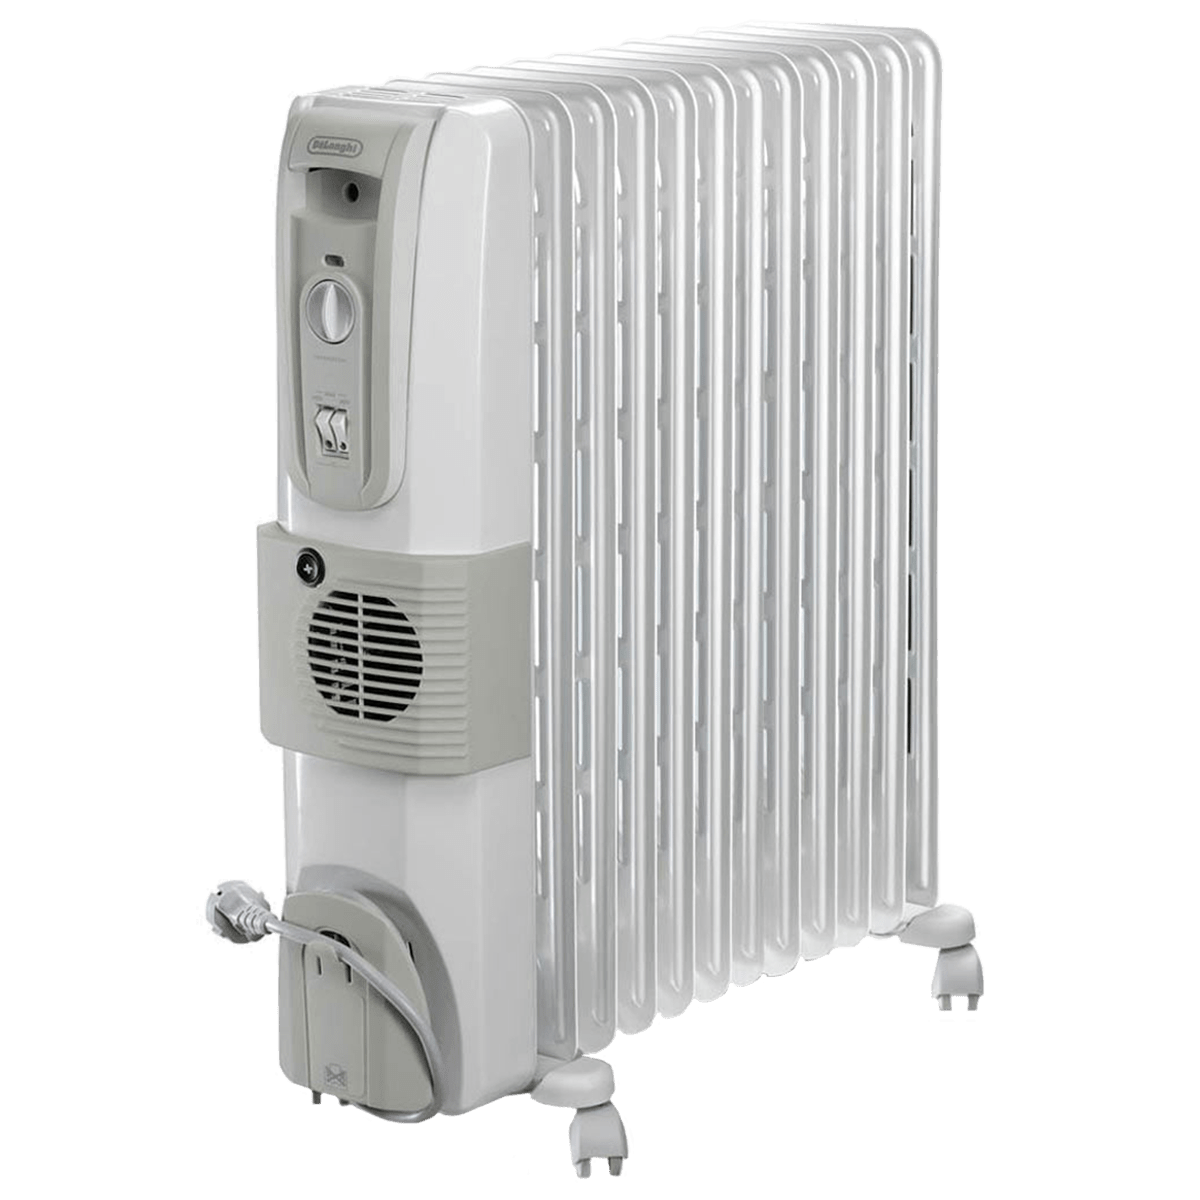 DeLonghi HOR 3000 Watts Fan Oil Filled Heater (Thermostat Control, KH771230V, White)